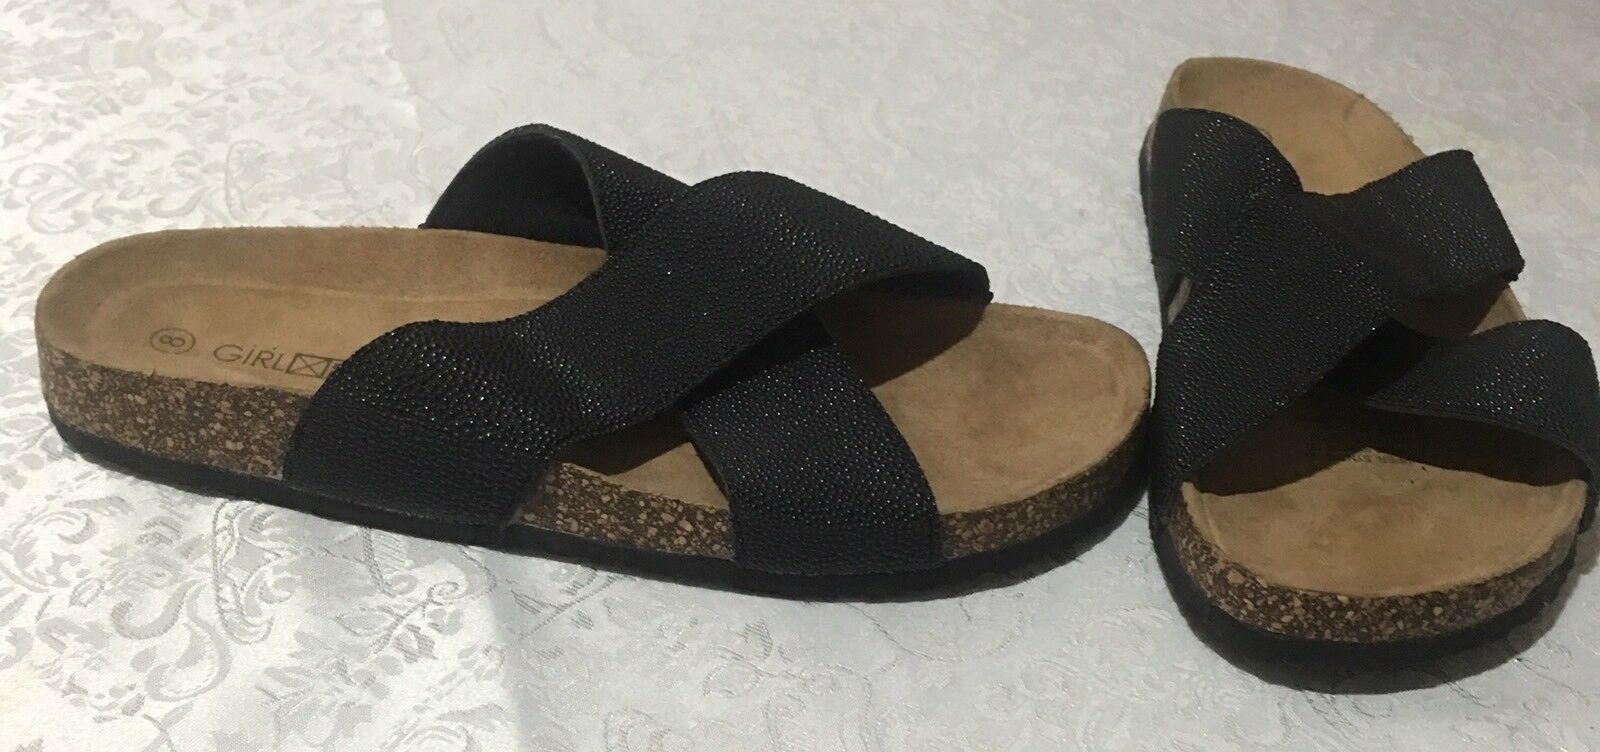 Girl Express 8 Size 8 Express Slip On Sandals 921195